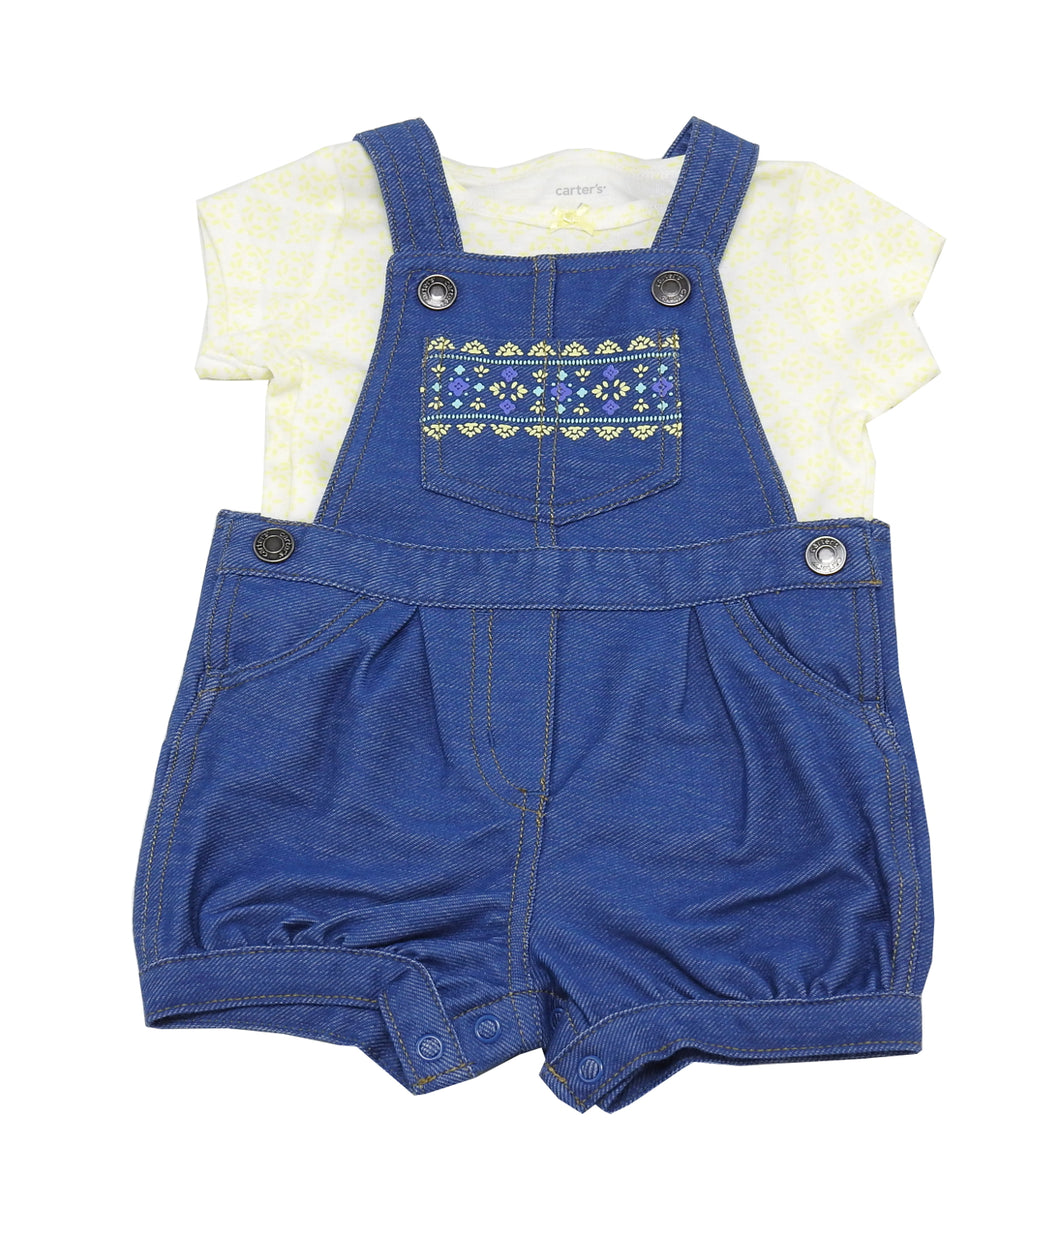 Carter's Baby Girl Size 6 Months 2-Piece Overall & Shirt Set, Denim/Yellow